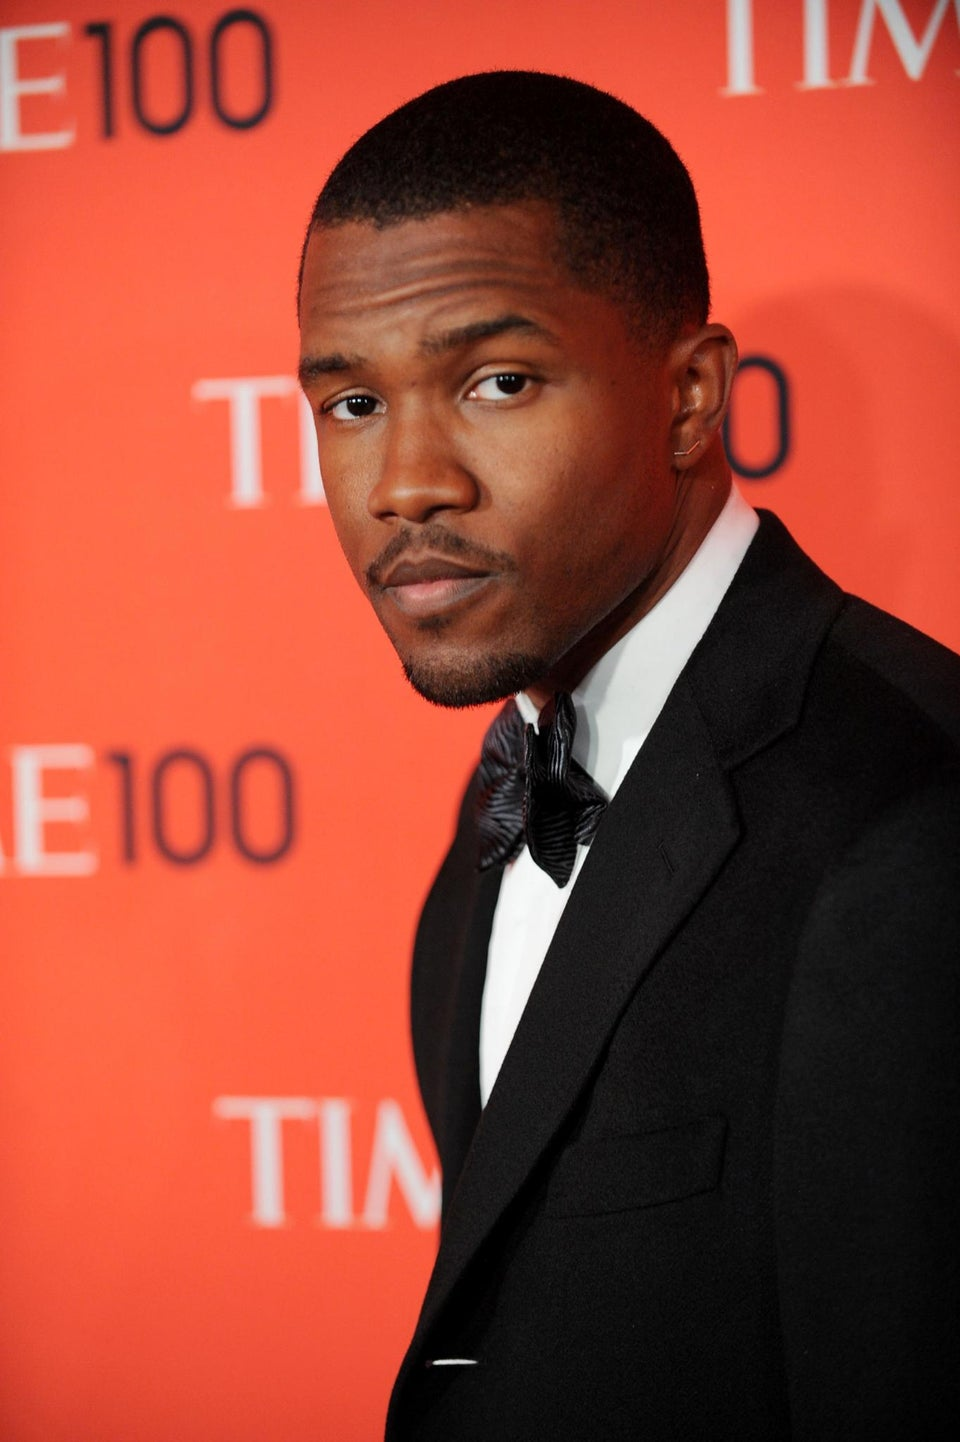 Is Frank Ocean Finally Ready to Release His New Album?